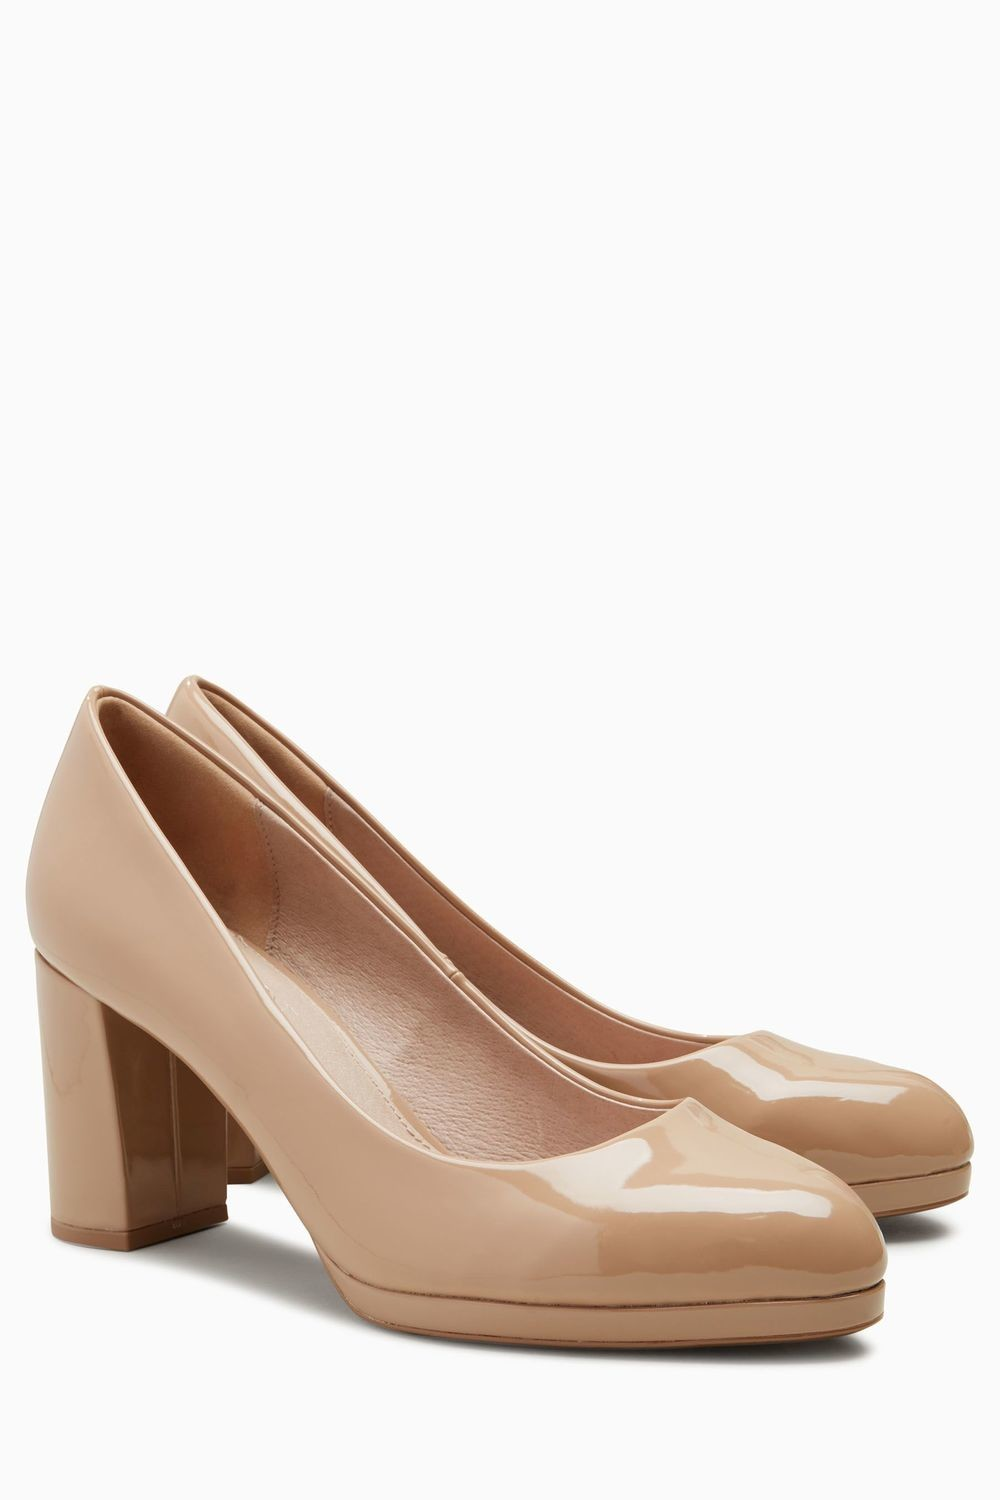 Next Nude Platform Courts